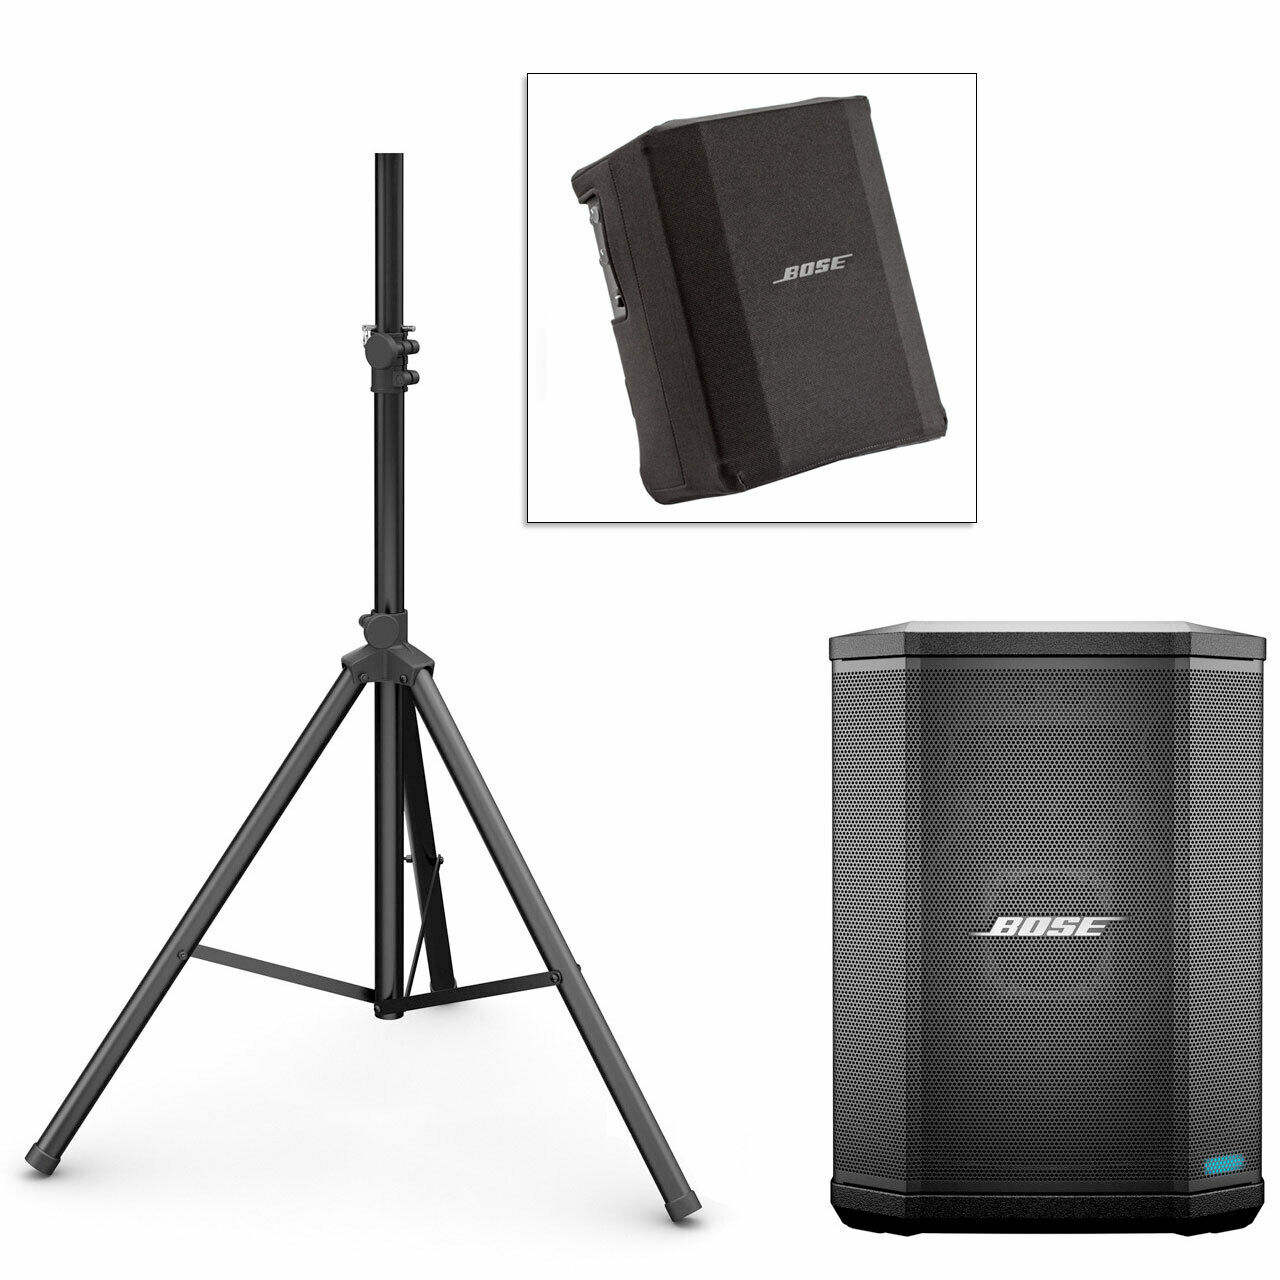 100% Originele Nieuwe Boses S1 Pro Pa Systeem W/Speaker Stand Snelle Levering Play-Cover-Bo nue Zwart